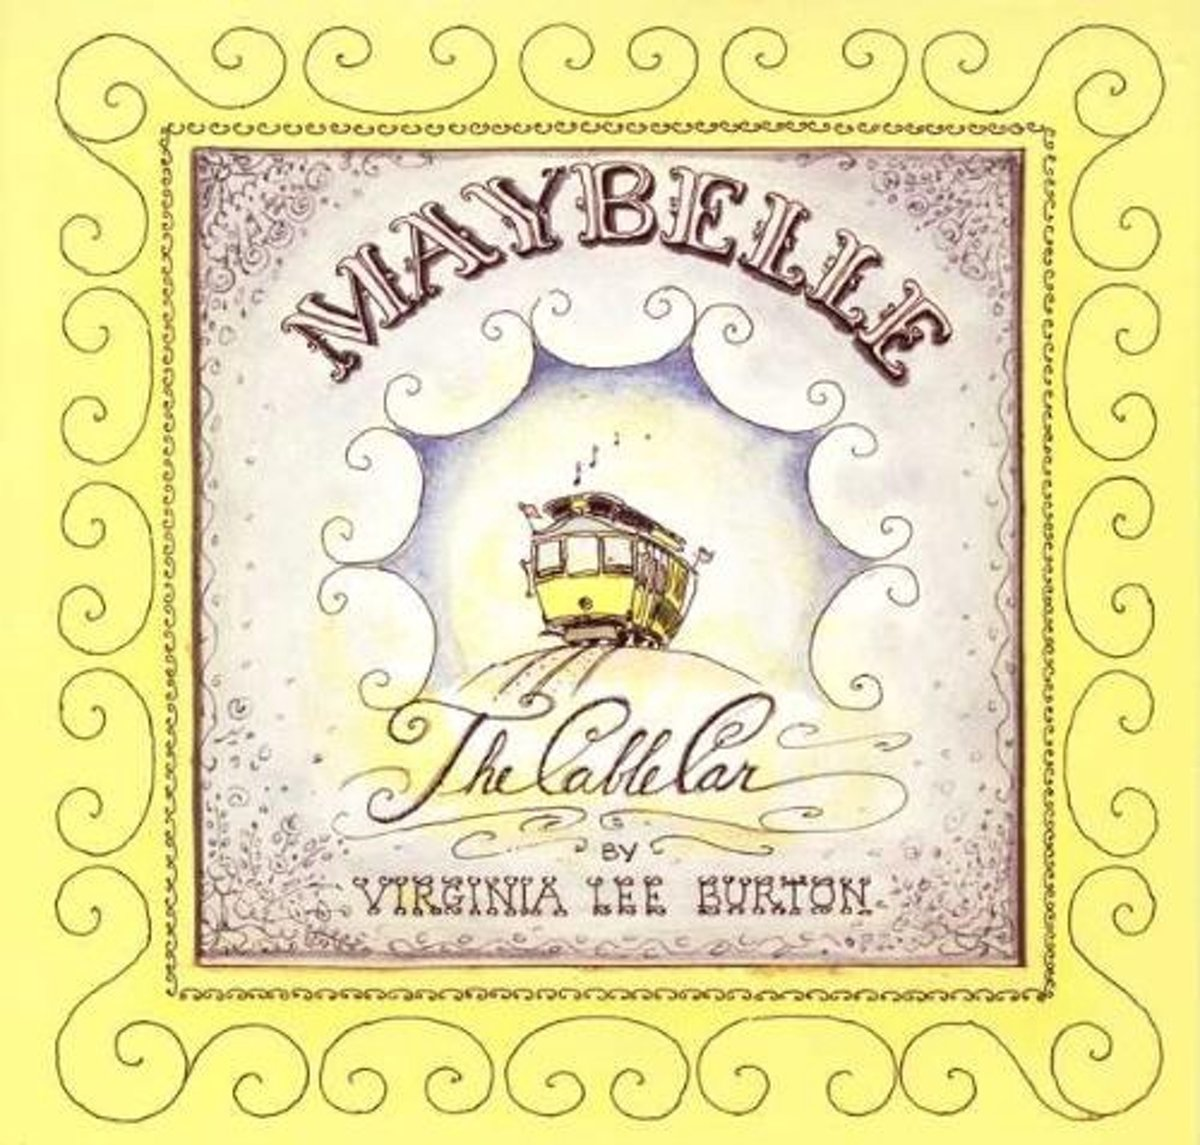 Maybelle, the Cable Car